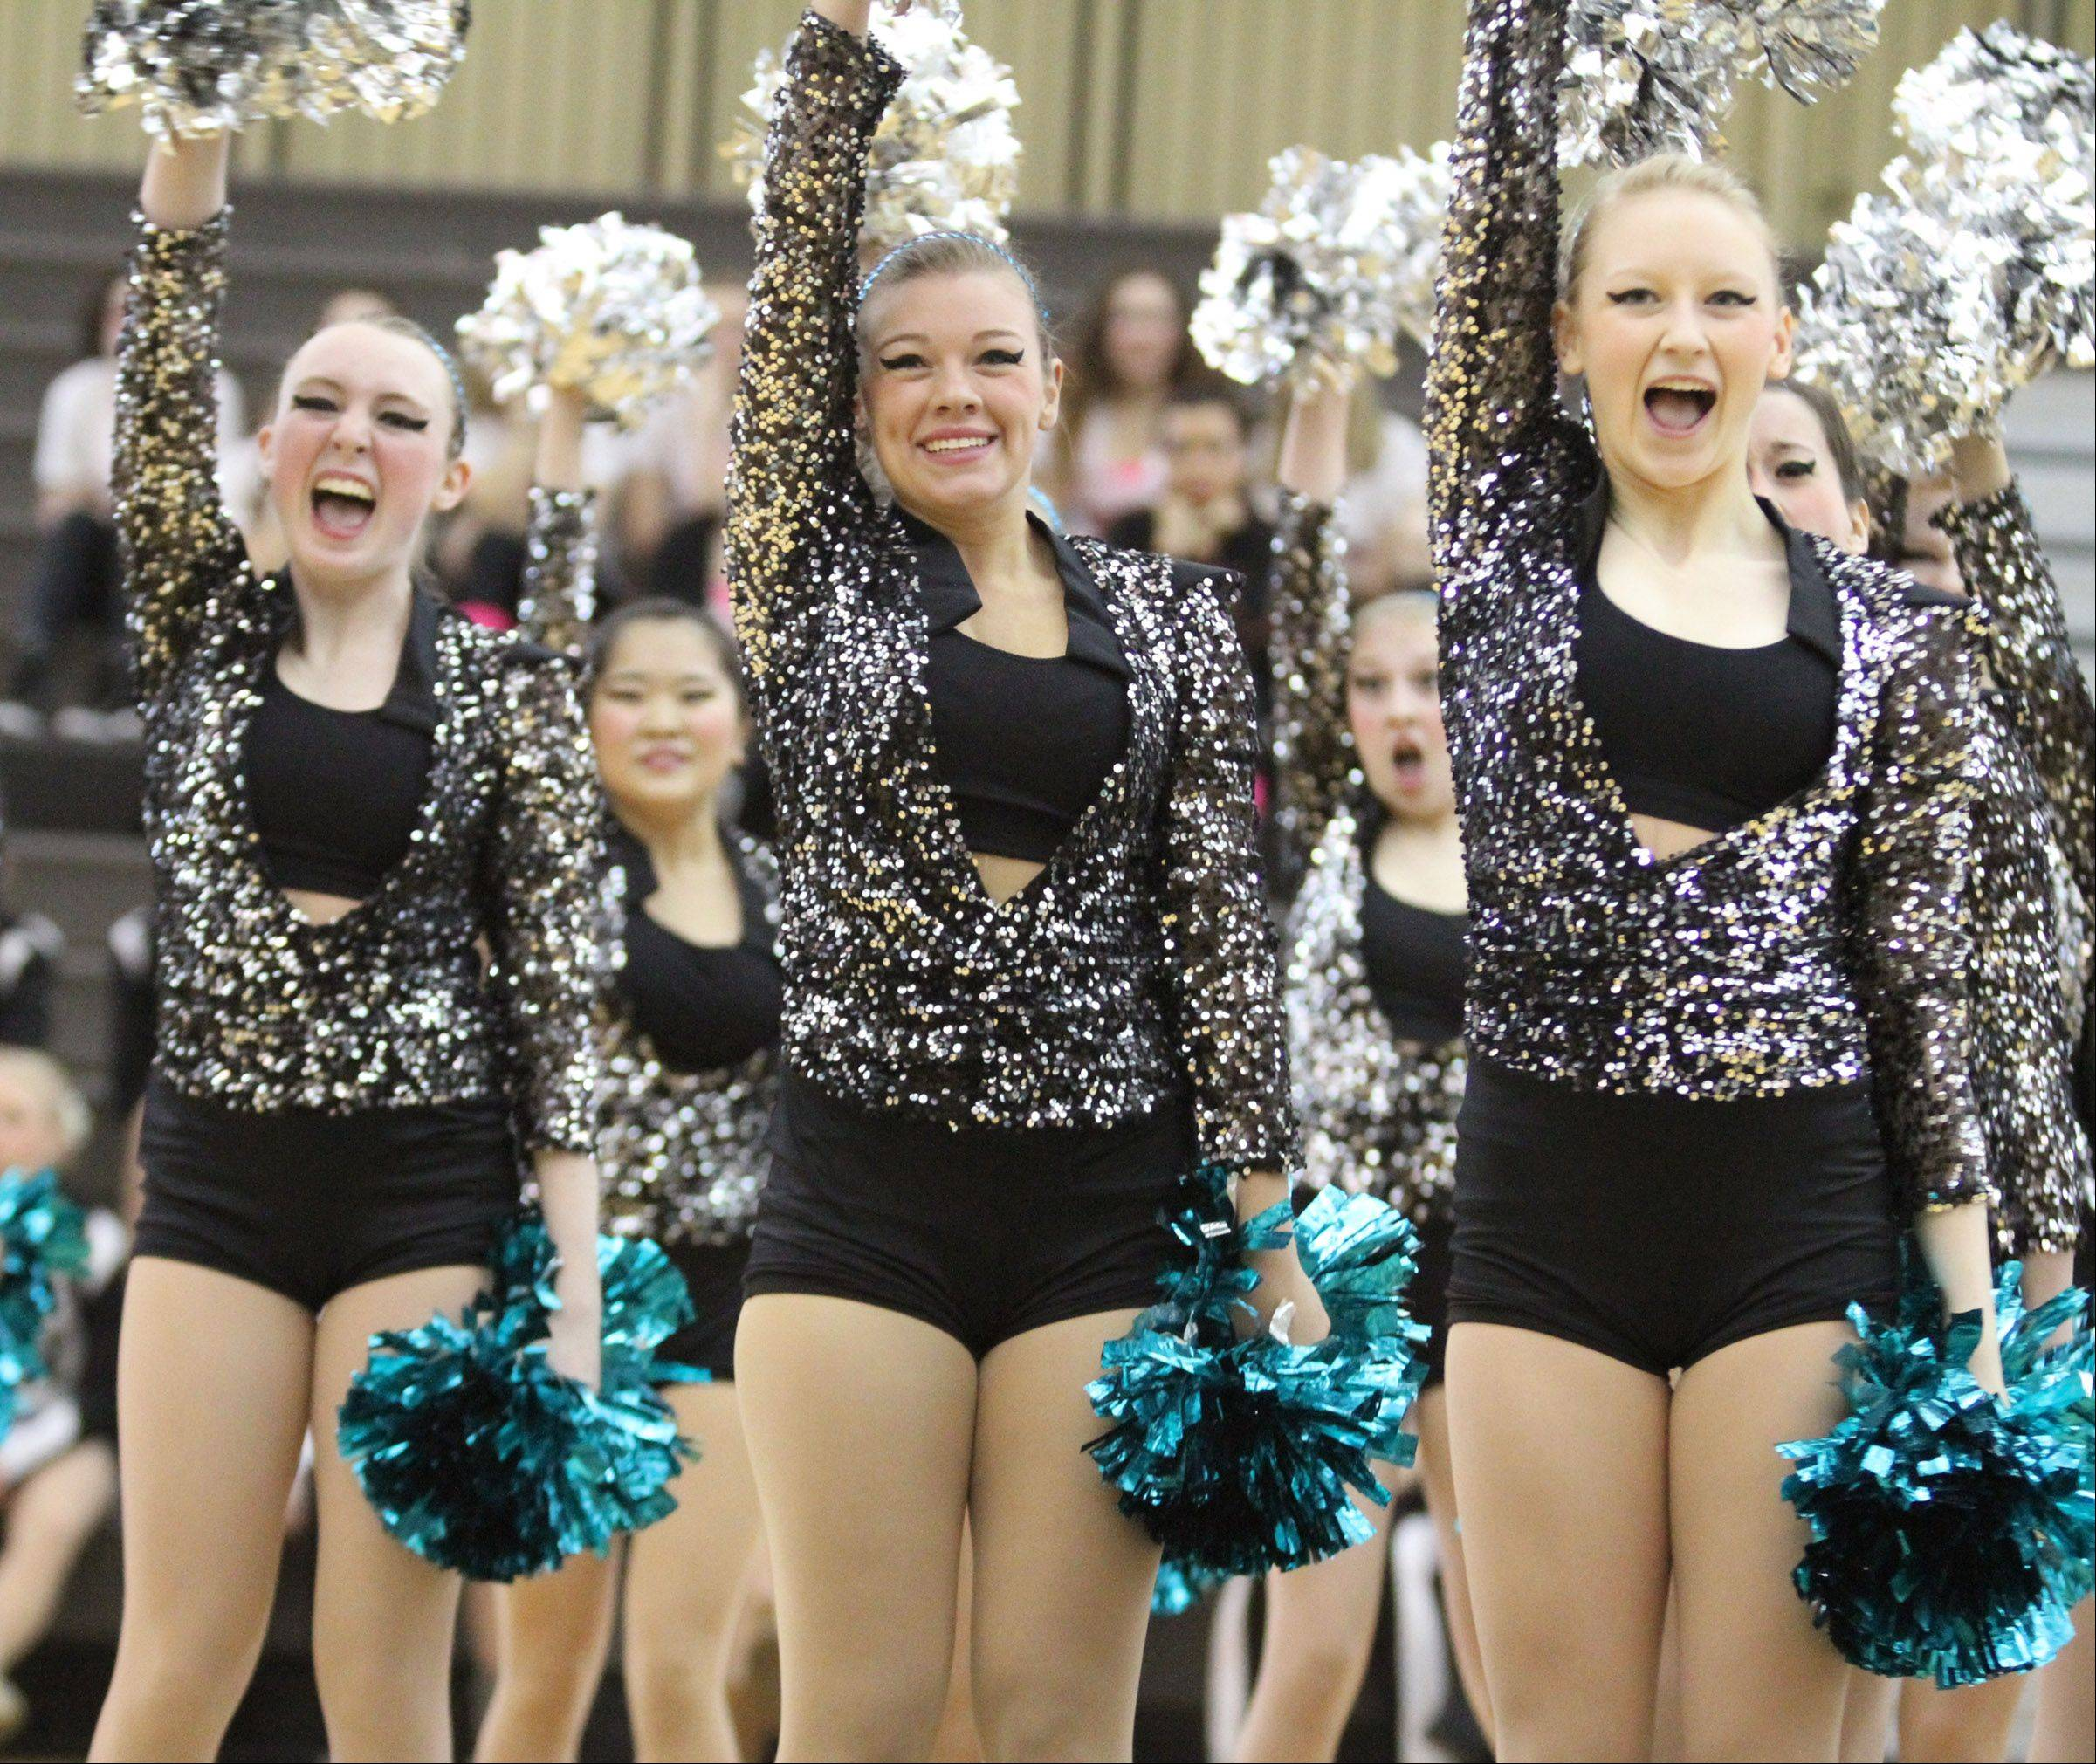 Grayslake Central High School dance team competes at the IHSA competitive dance sectional in Grayslake on Saturday.